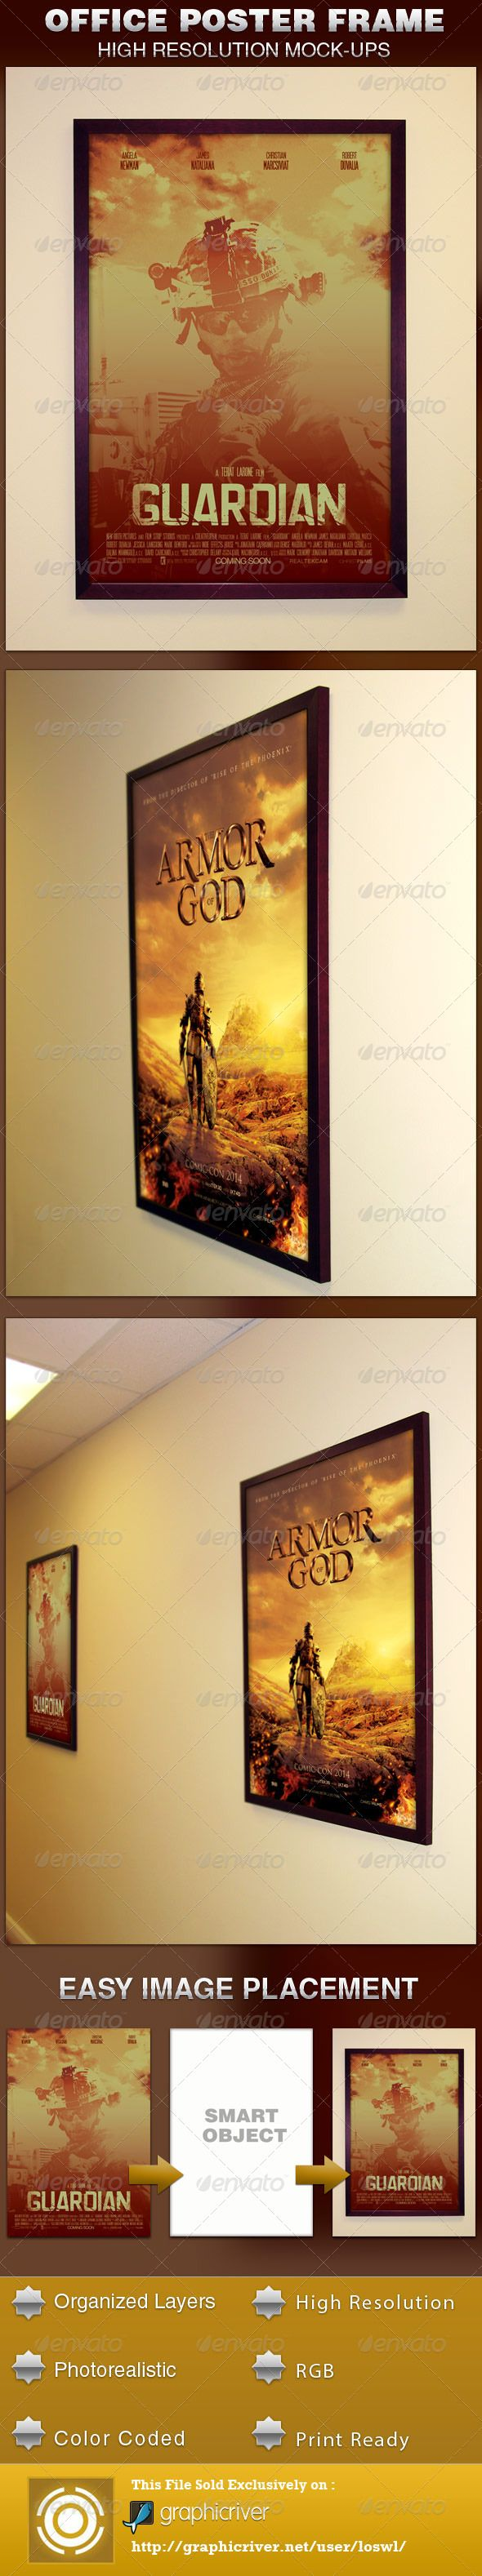 ideas about movie poster template poster office frame poster mockup template